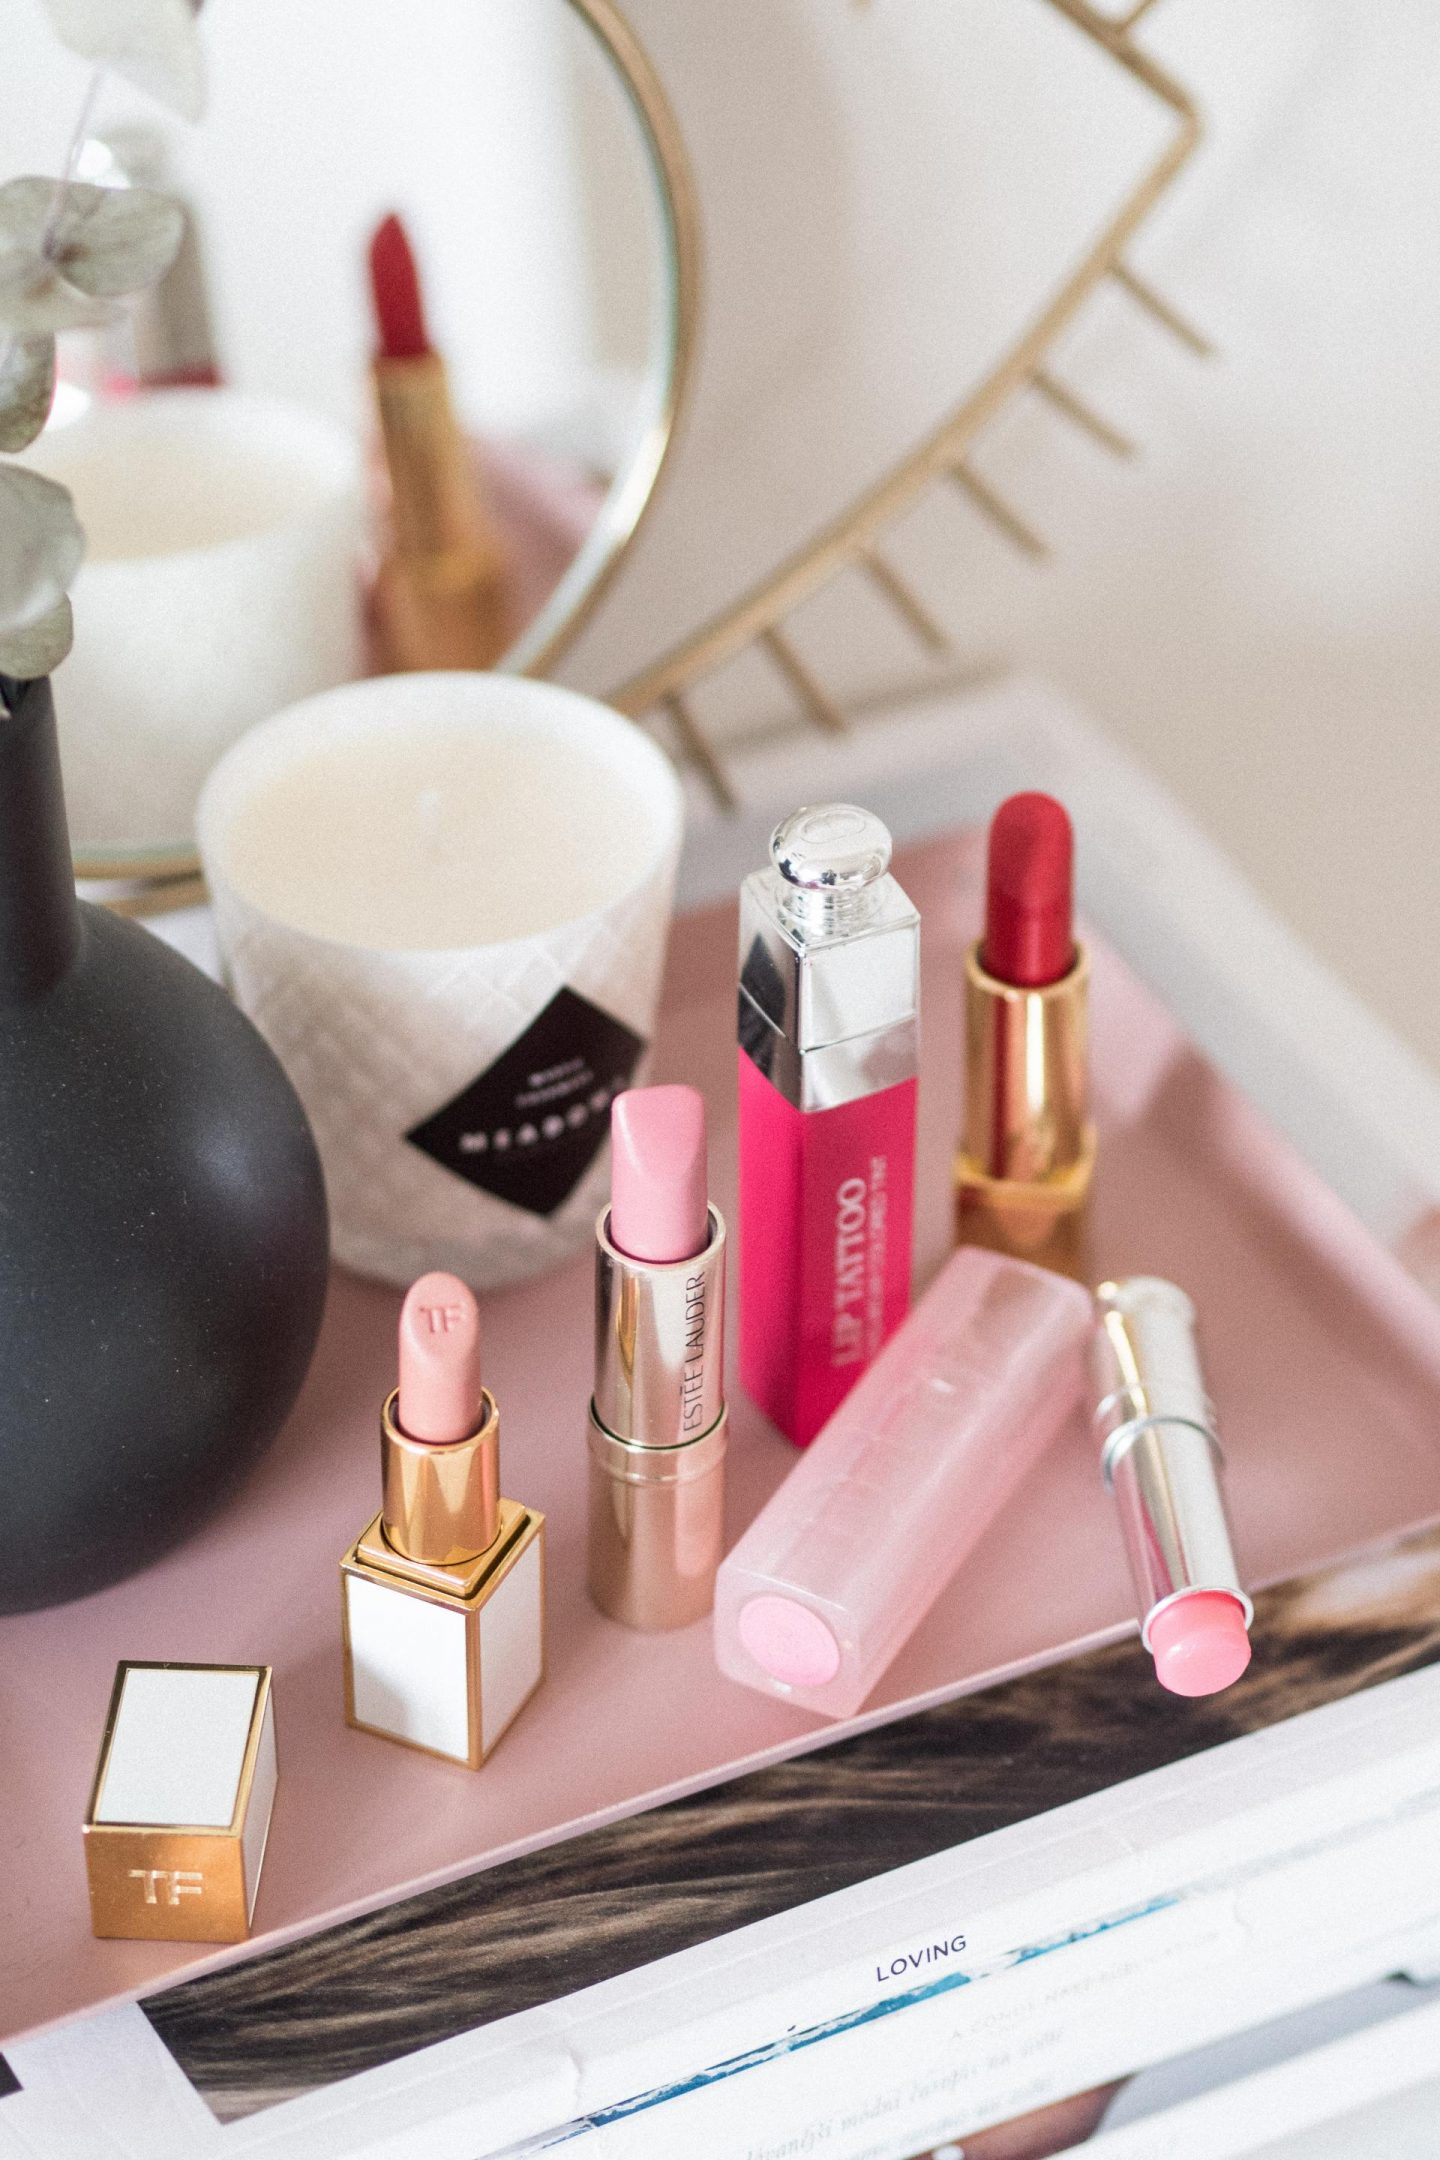 LIPSTICK FOR EVERY OCCASION